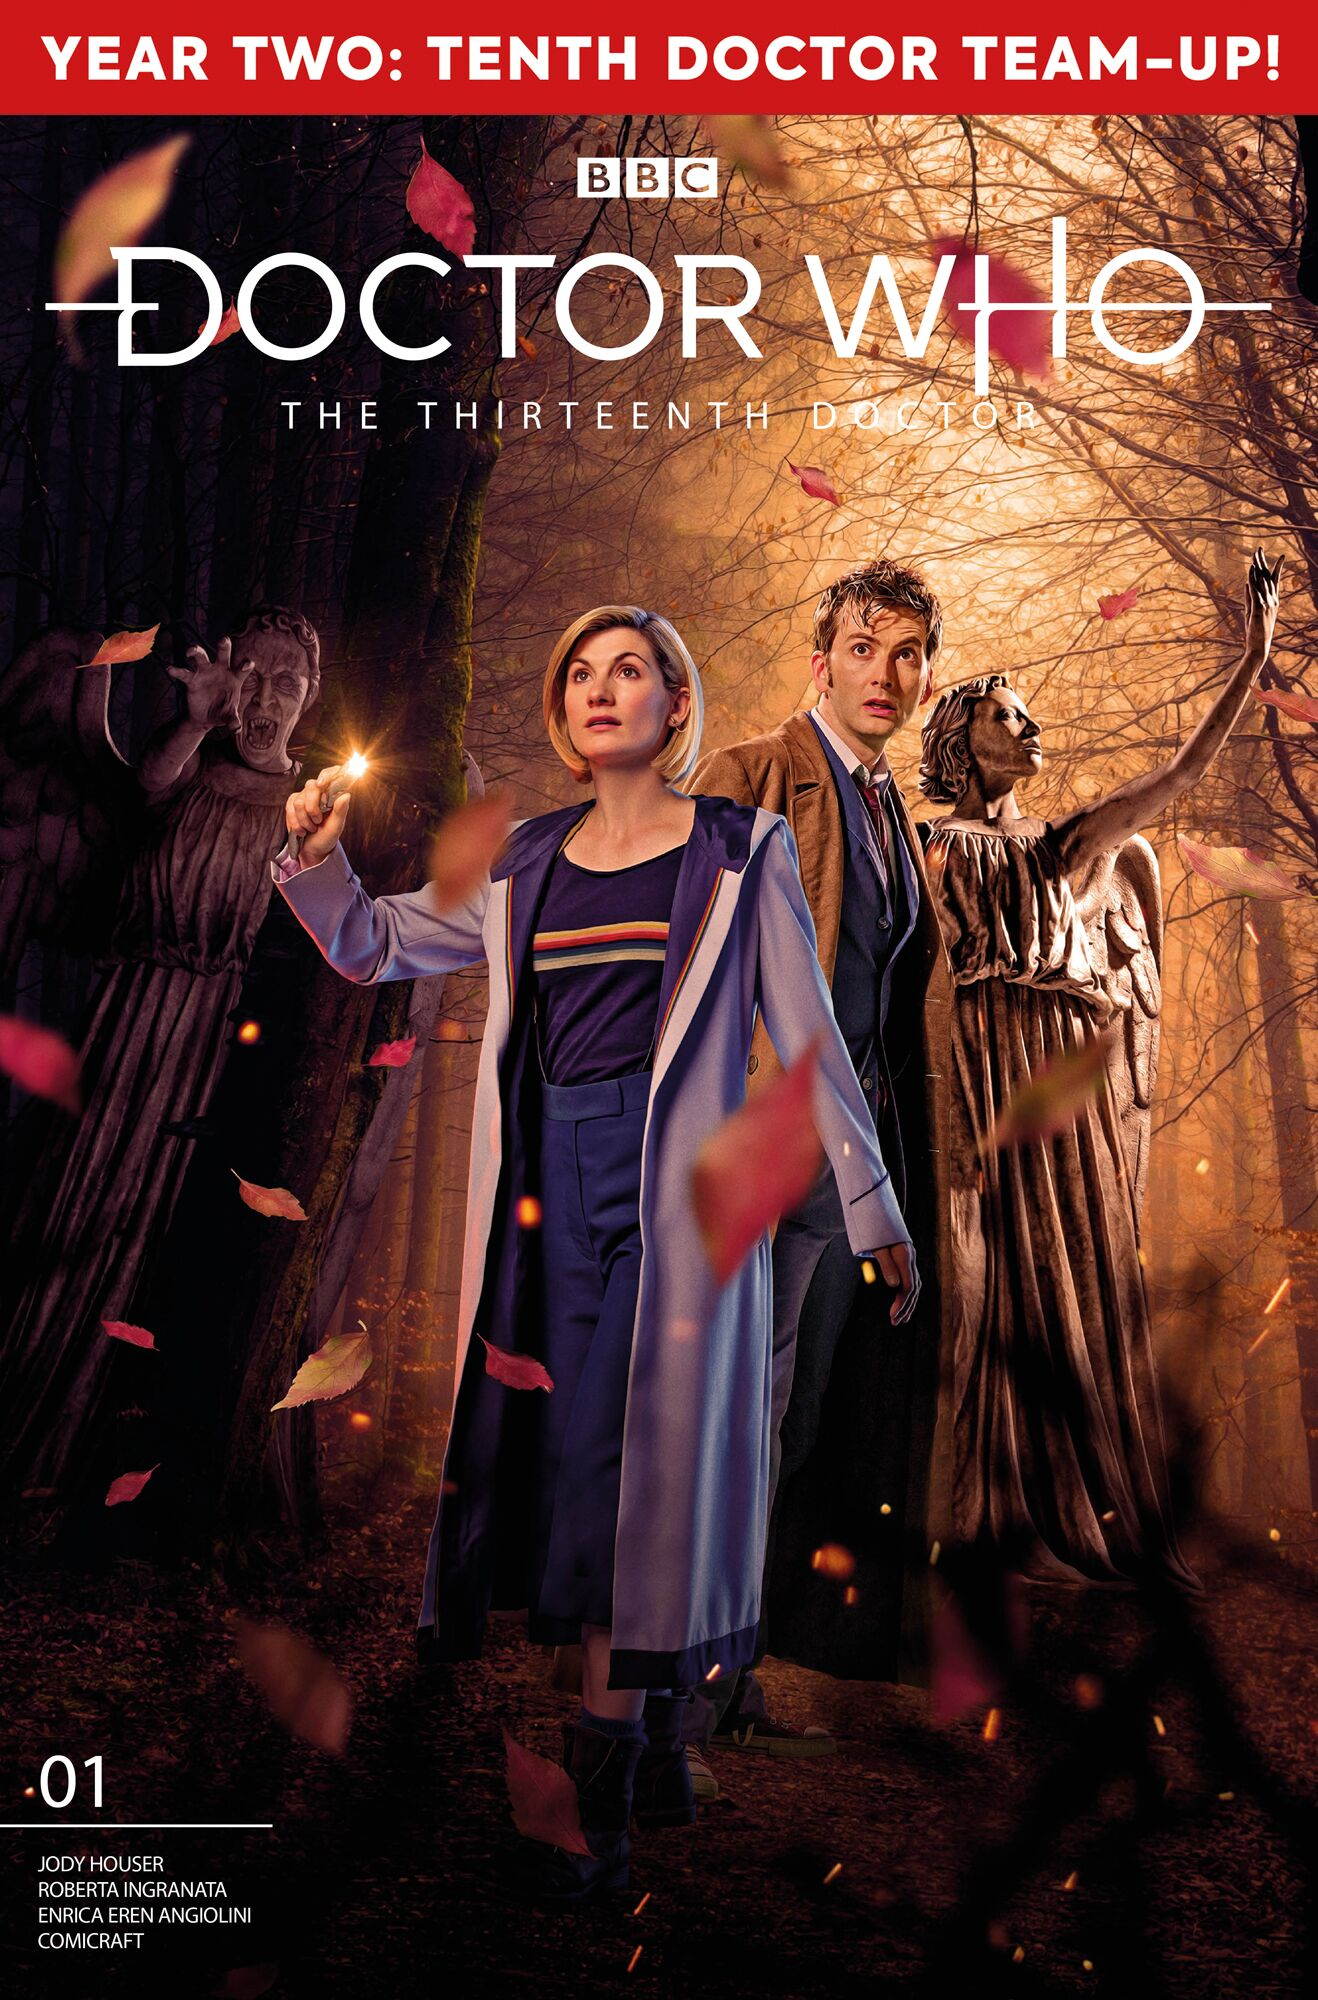 Doctor Who comics: The Thirteenth and Tenth Doctors join forces in January 2020!